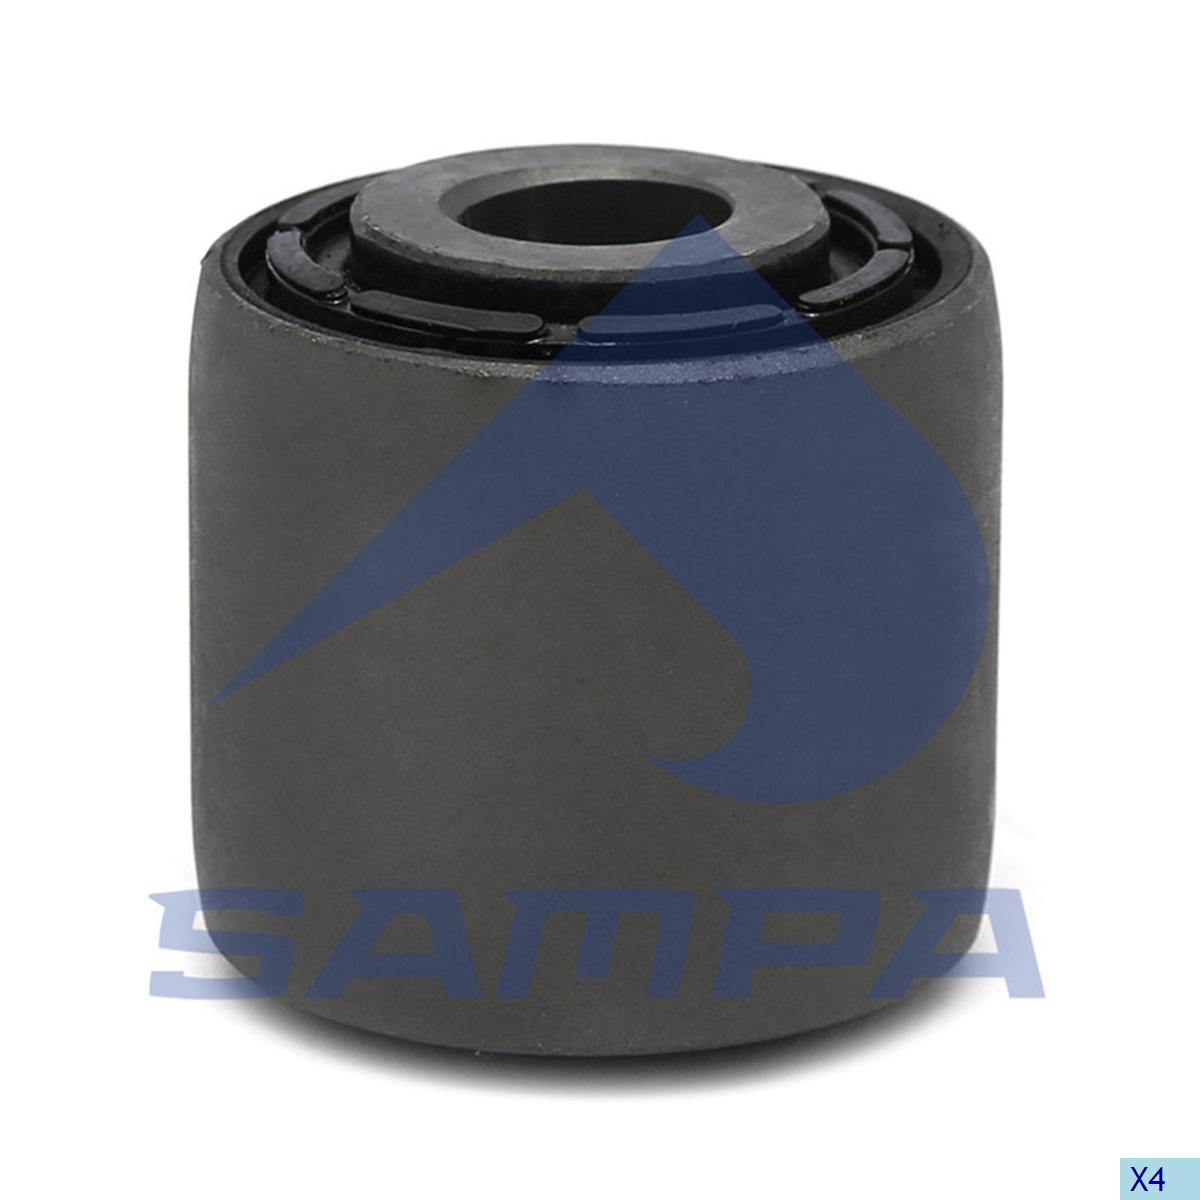 Rubber Bushing, Stabilizer Bar, Daf, Suspension